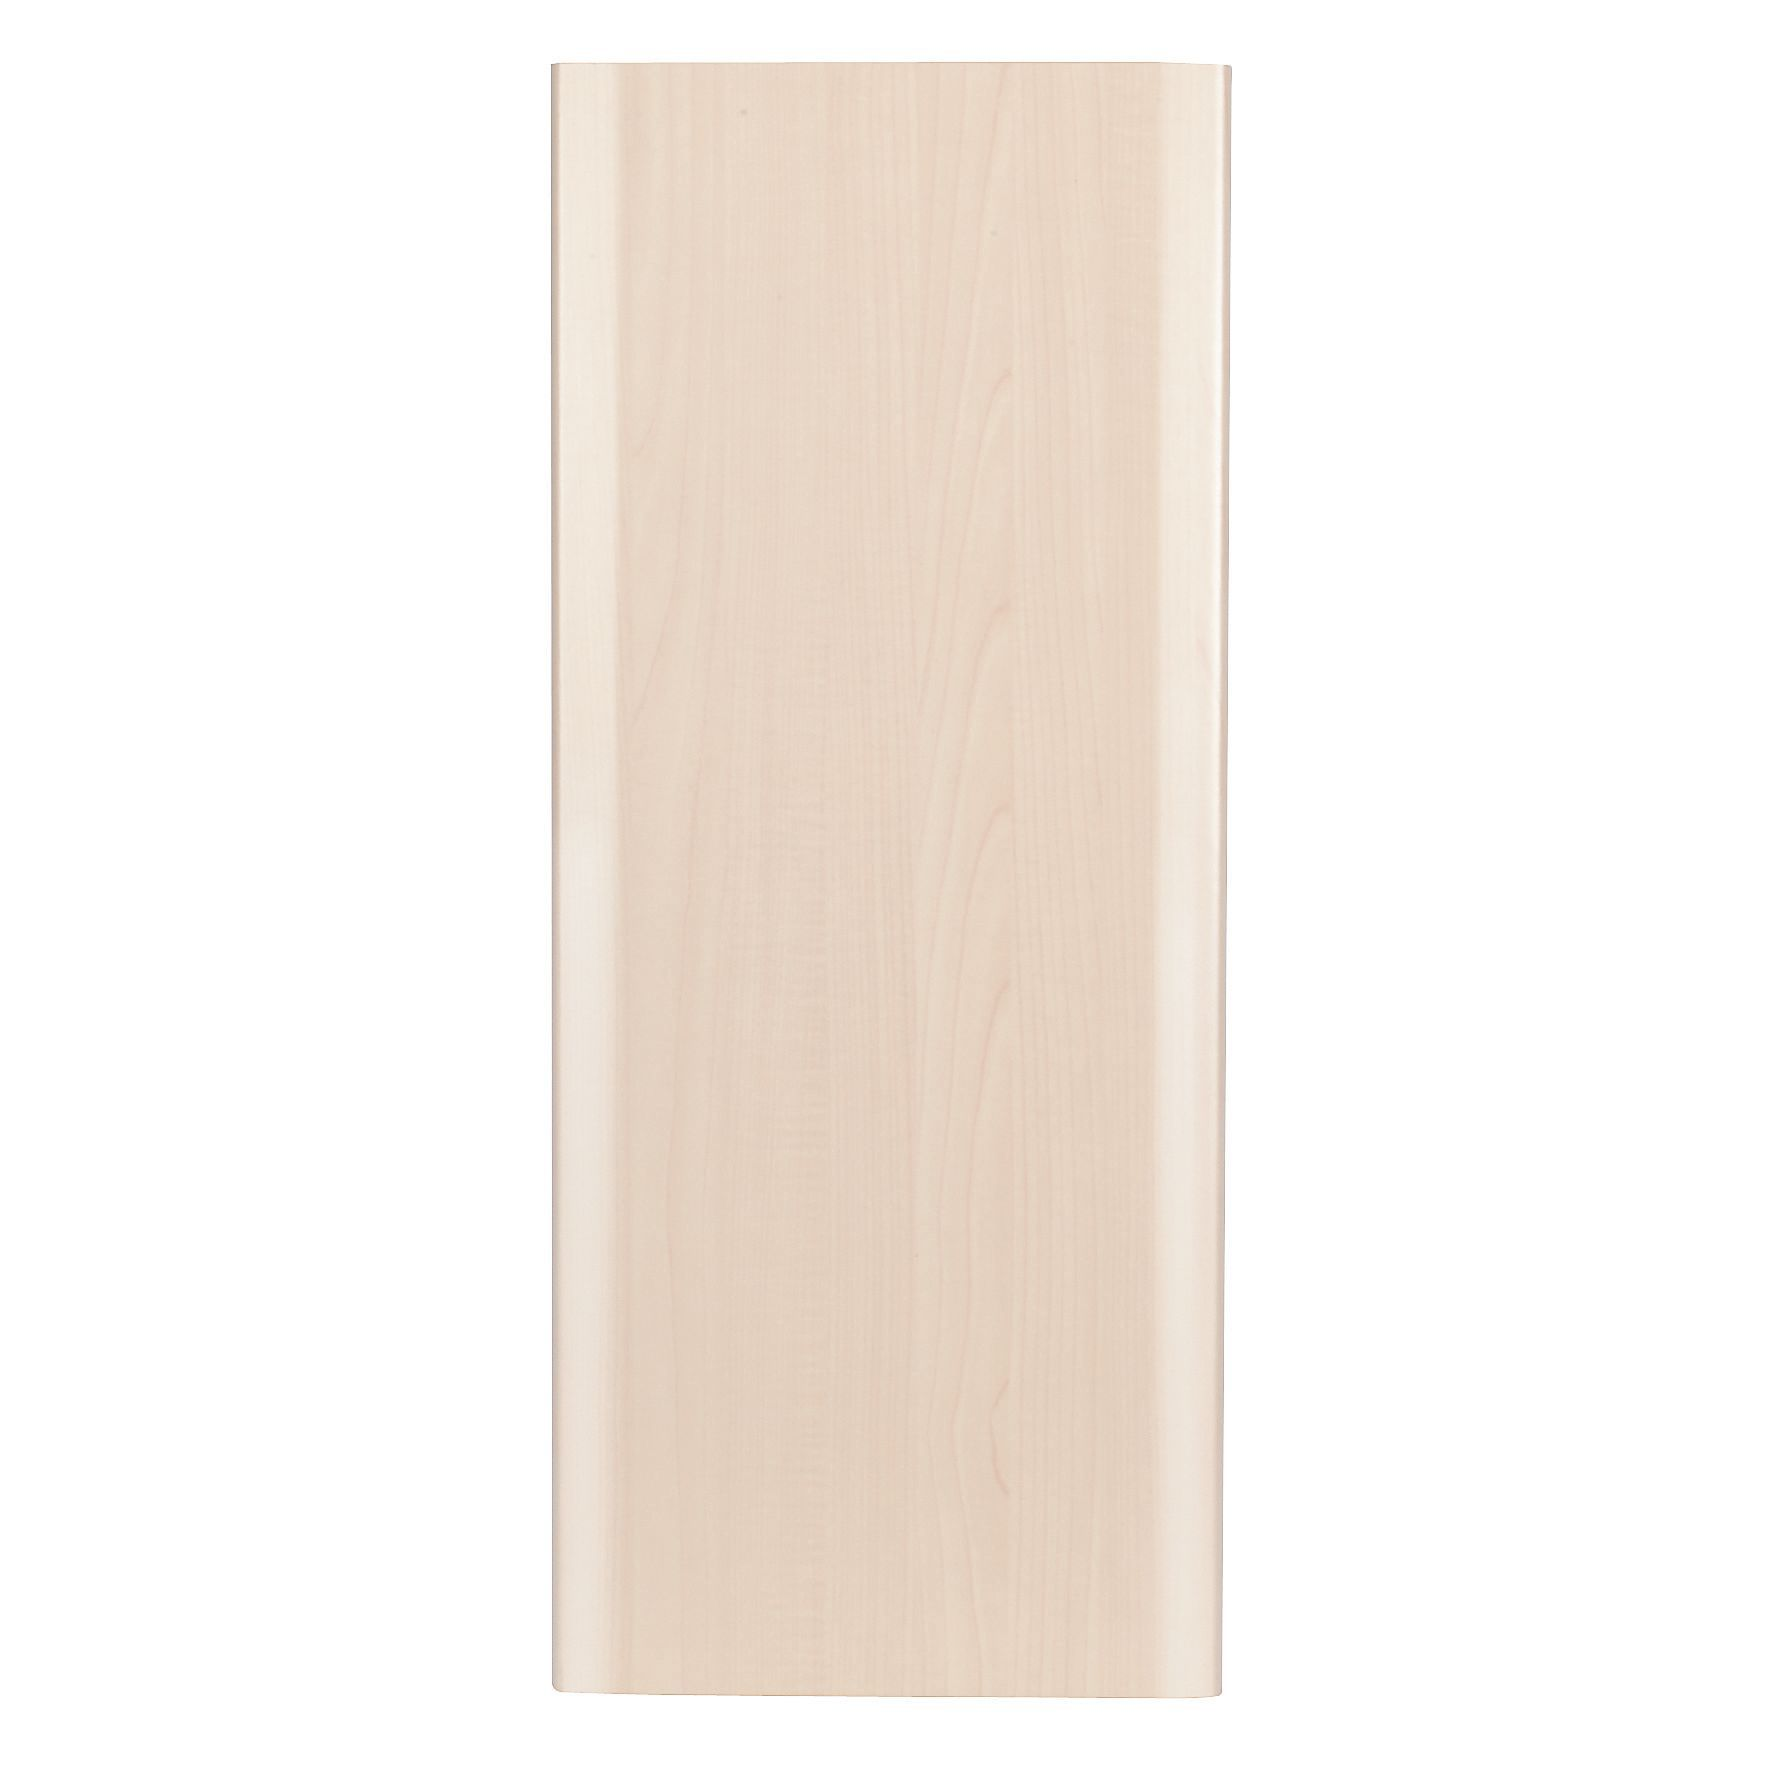 It Kitchens Maple Effect Wall End Replacement Panel 290 Mm